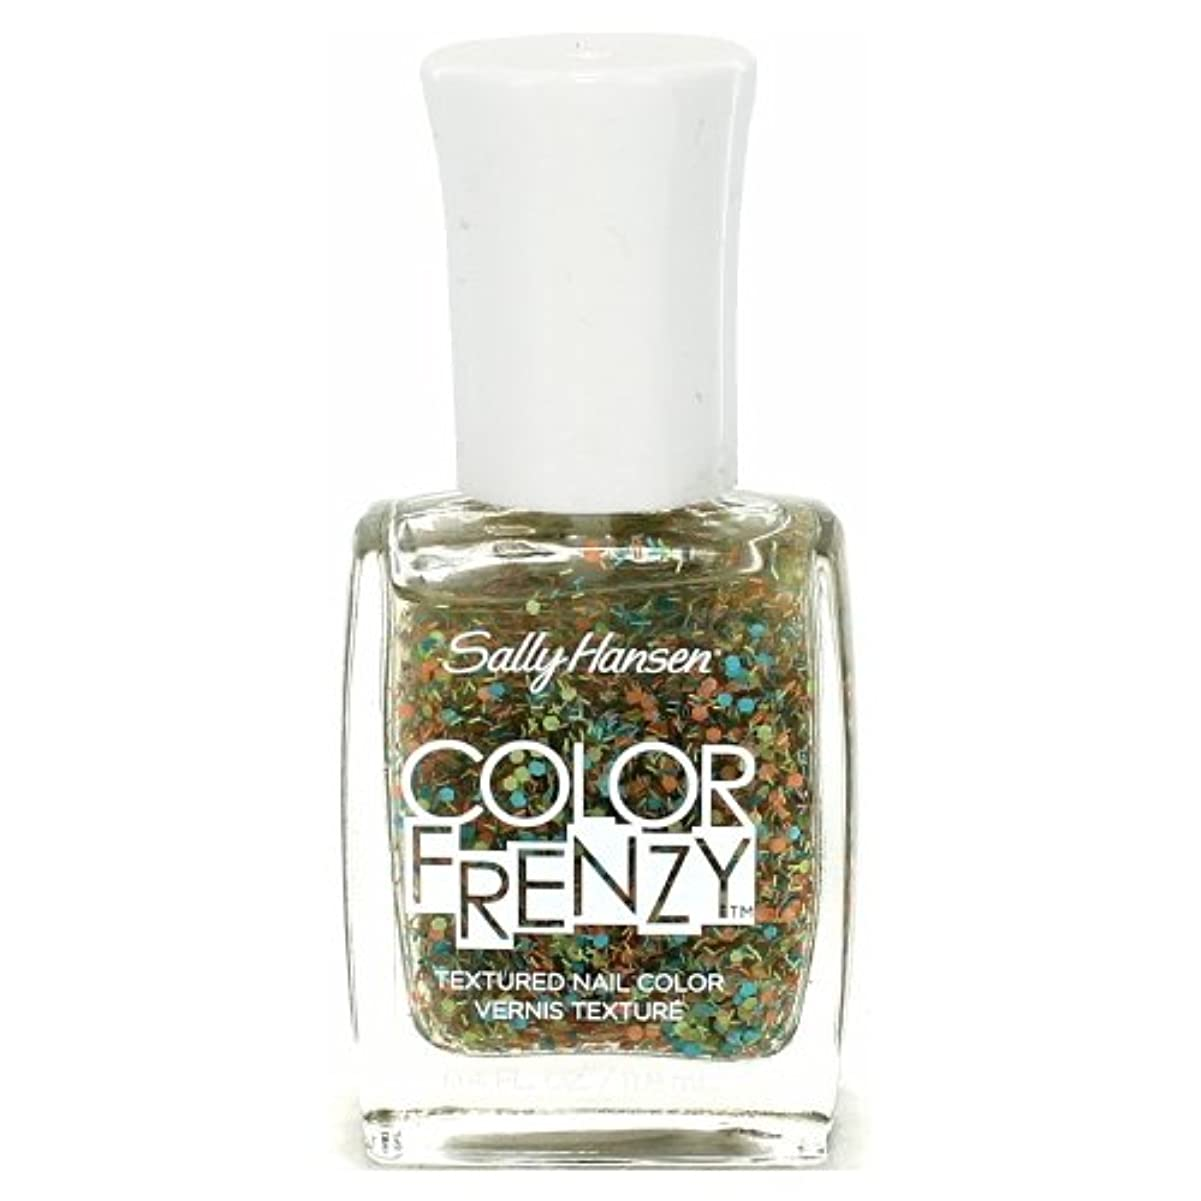 思いつく職人古い(3 Pack) SALLY HANSEN Color Frenzy Textured Nail Color - Paint Party (並行輸入品)